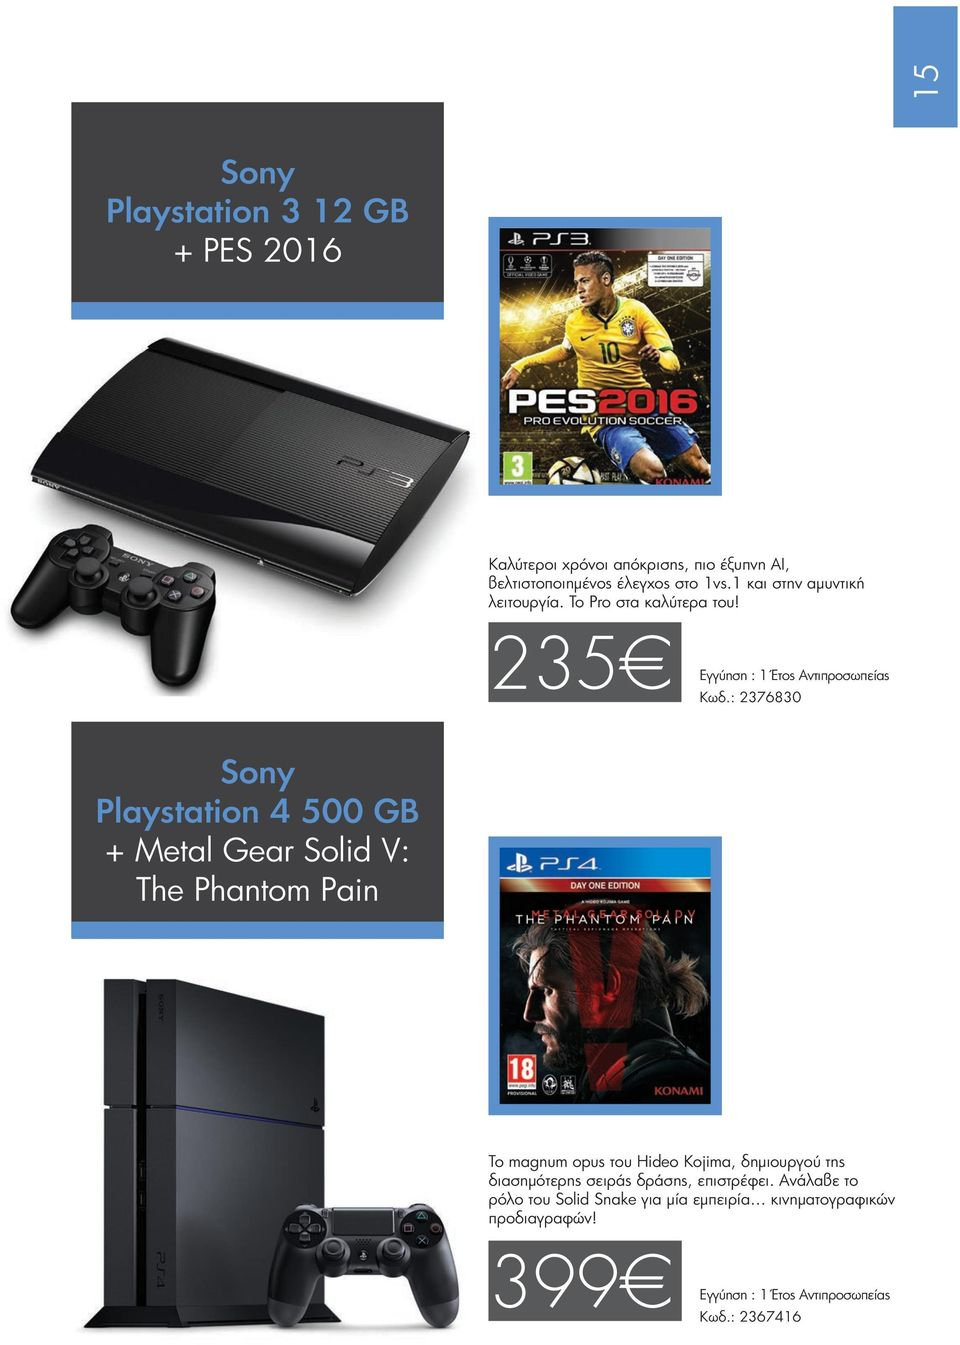 : 2376830 Sony Playstation 4 500 GB + Metal Gear Solid V: The Phantom Pain Το magnum opus του Hideo Kojima, δημιουργού της